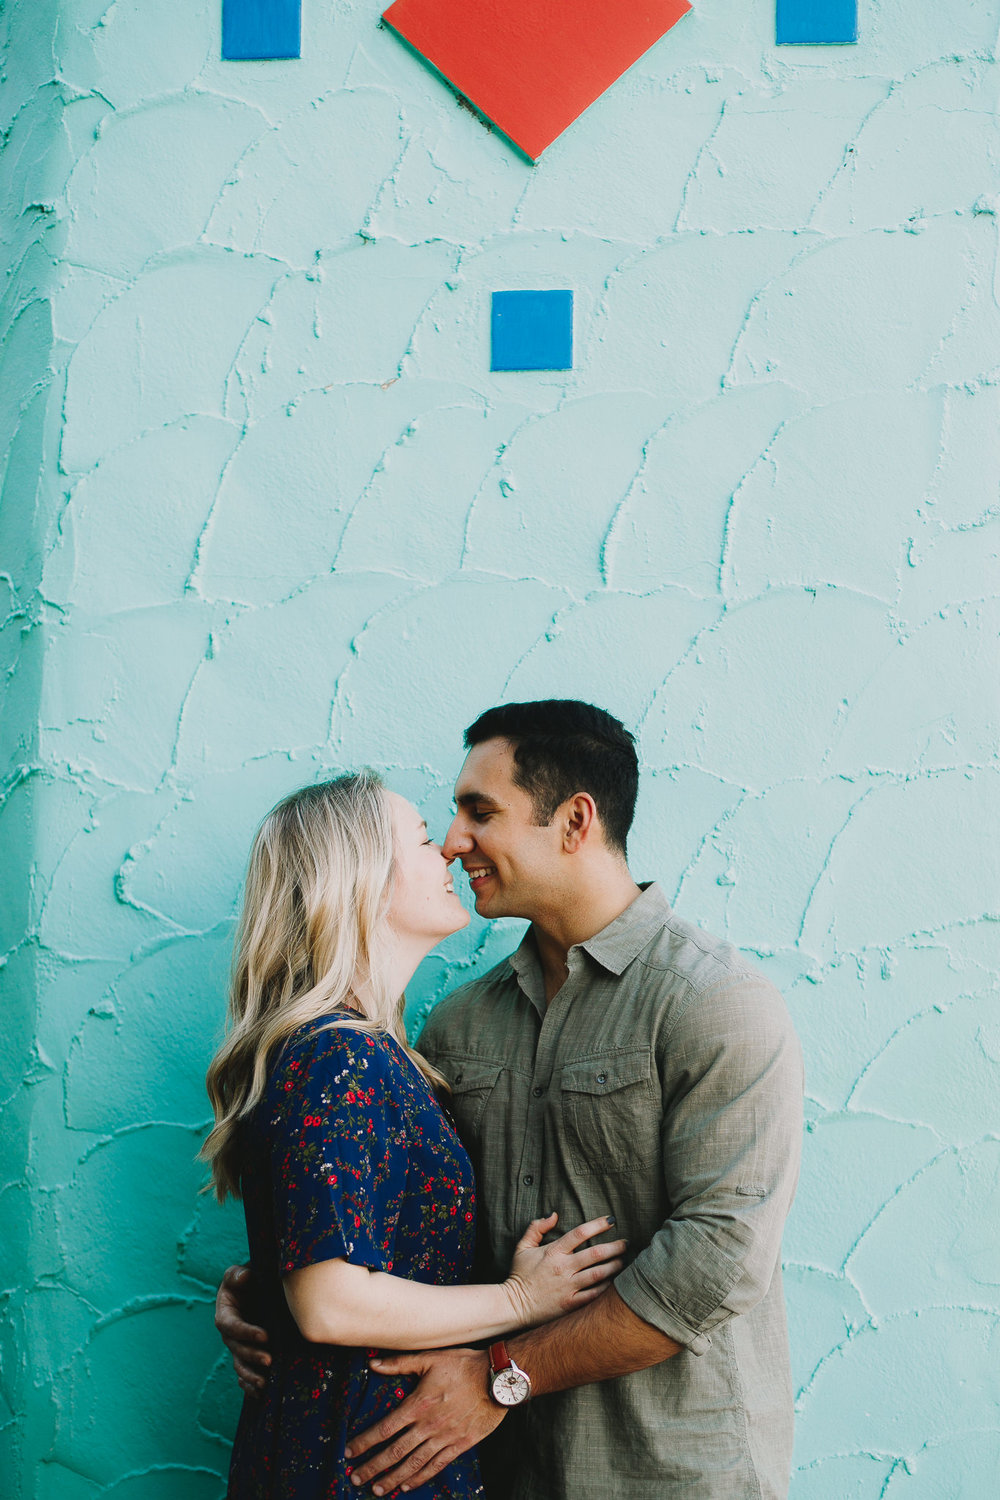 Archer Inspired Photography Capitola Beach Santa Cruz Wedding Engagement Lifestyle Session Photographer-66.jpg